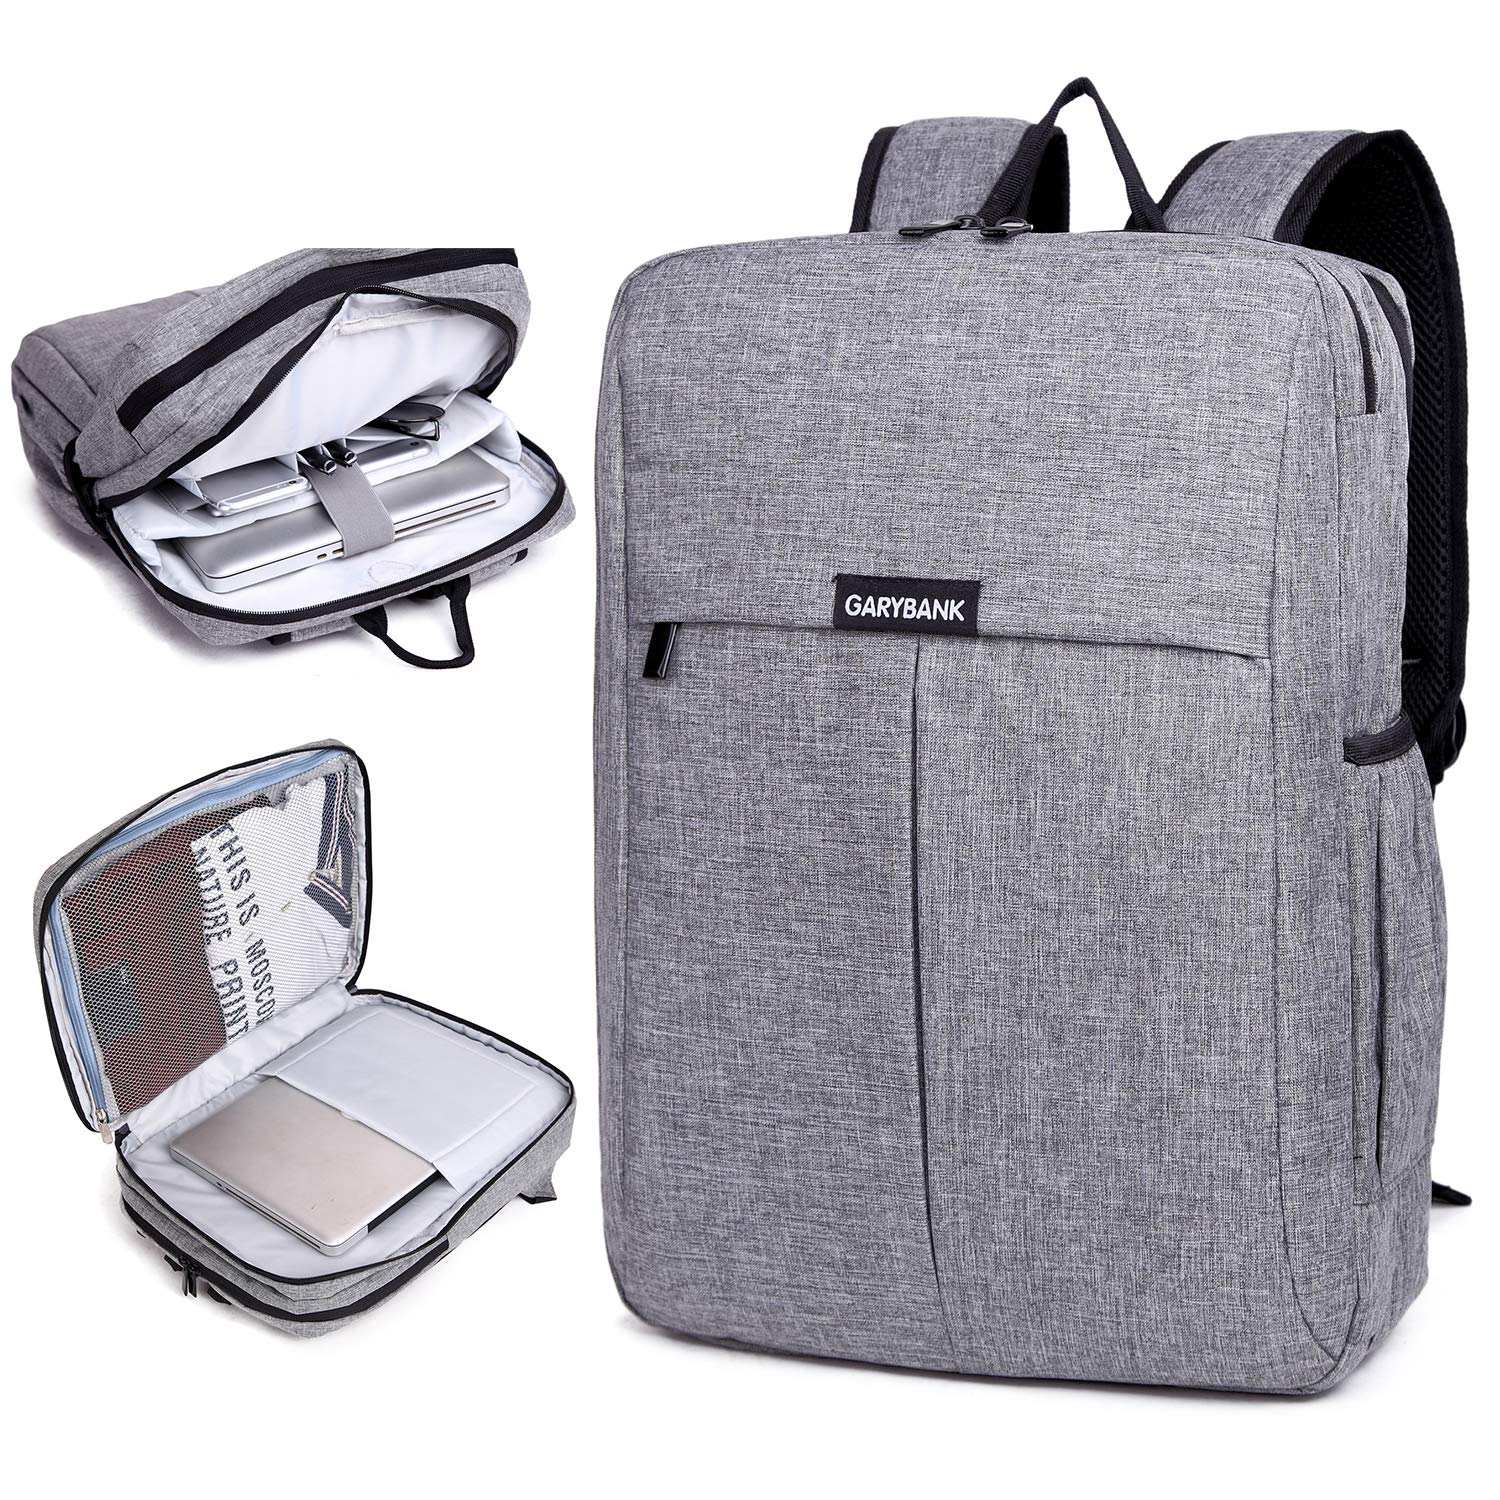 88fc701a6e Garybank Waterproof Laptop Backpack 15.6 for Women Men Both Top Loader and Panel  Loader Slim Business Rucksack Good for College School Travel Shoulder Tech  ...